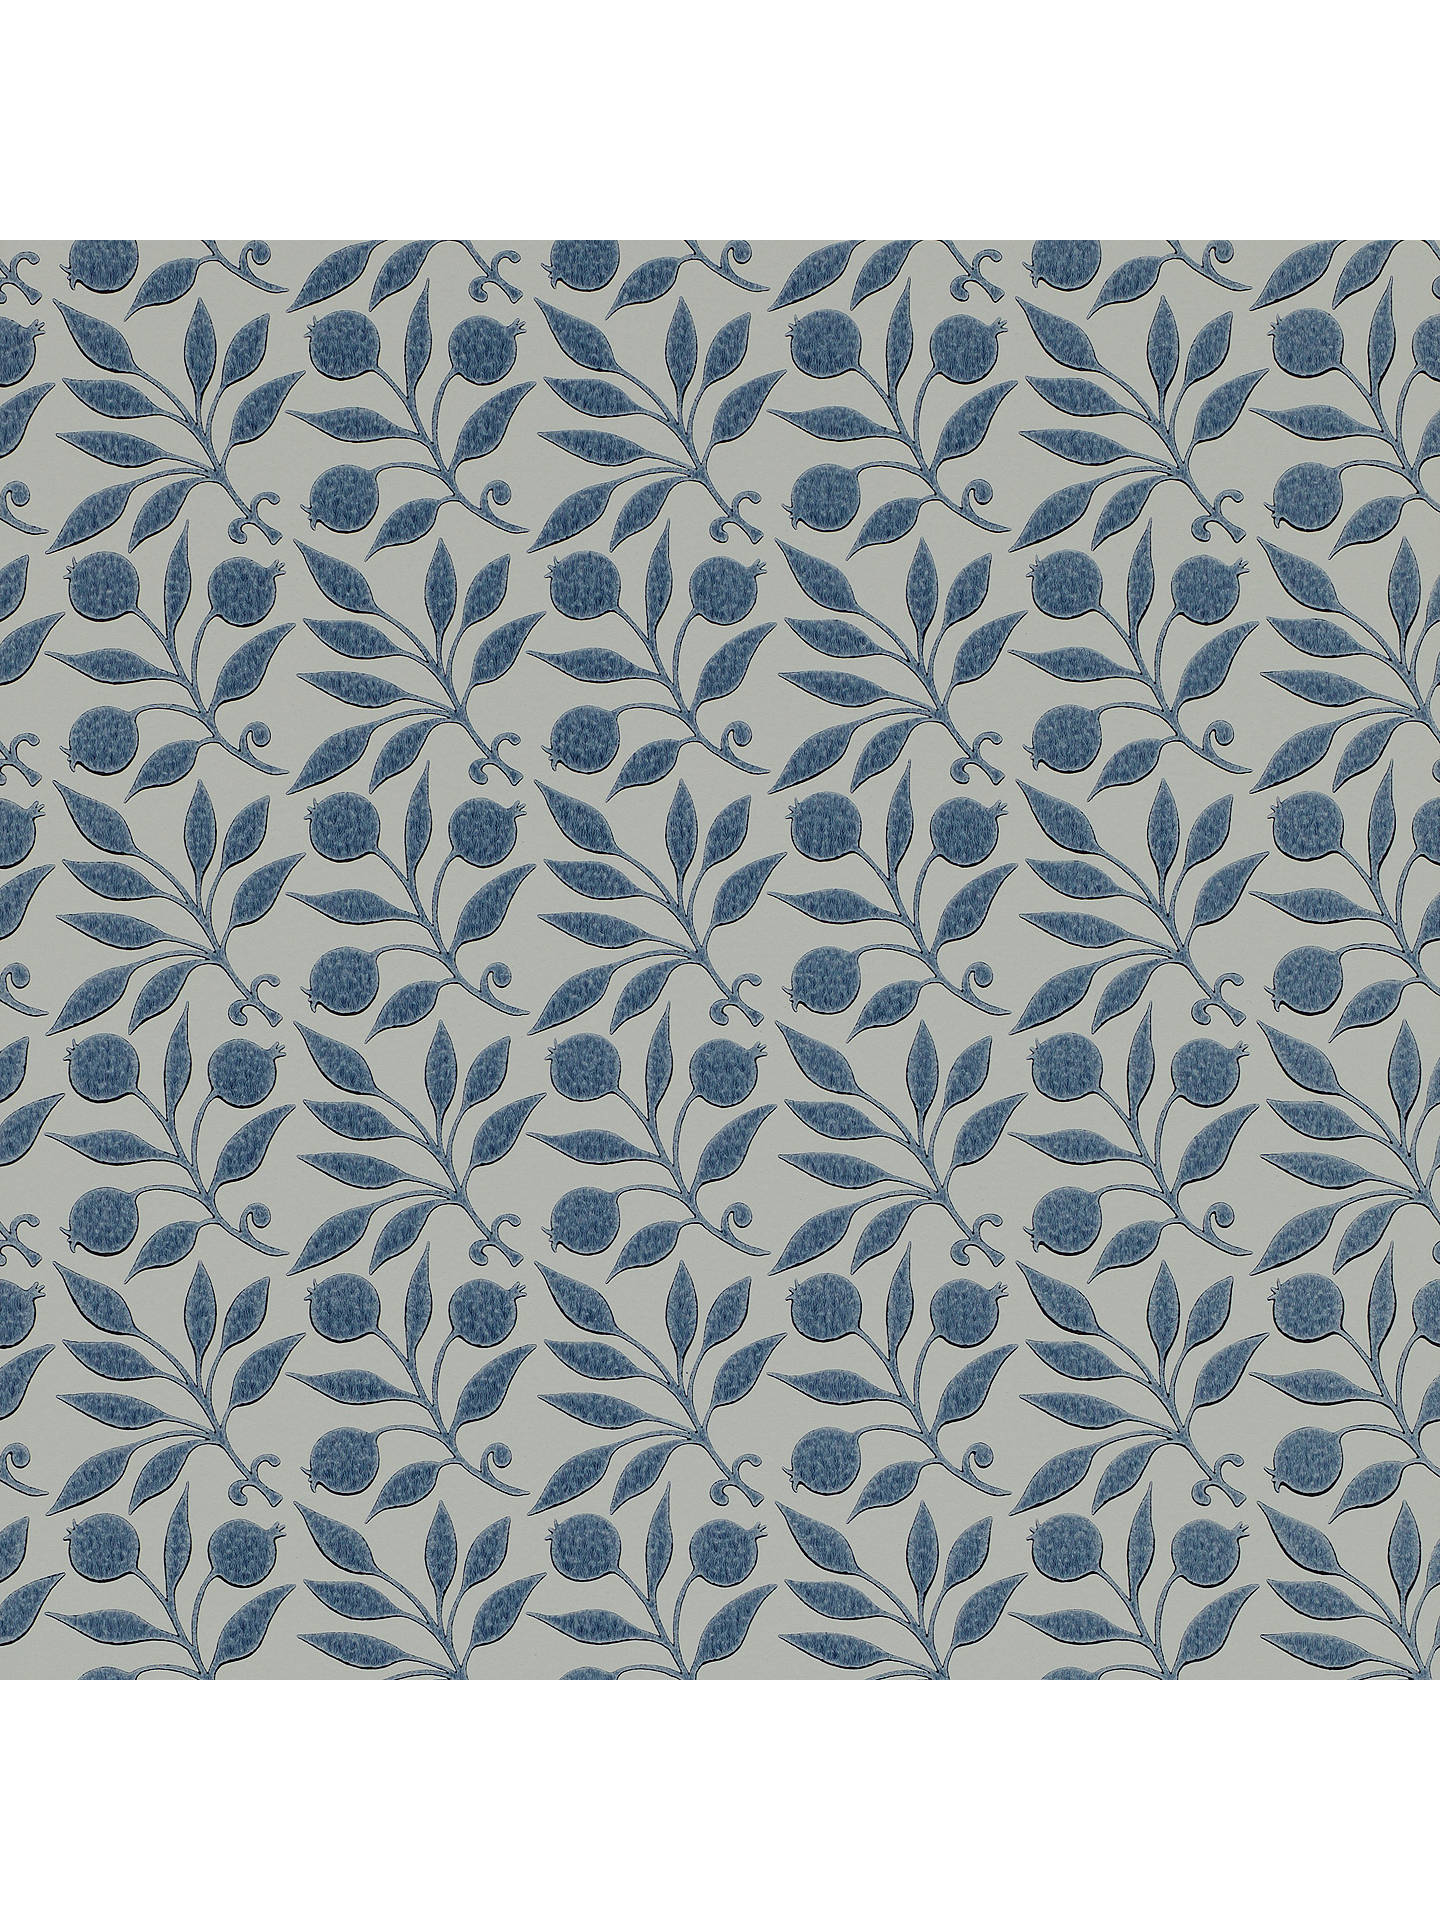 Buy Morris & Co. Rosehip Wallpaper, Indigo, DM3W214711 Online at johnlewis.com